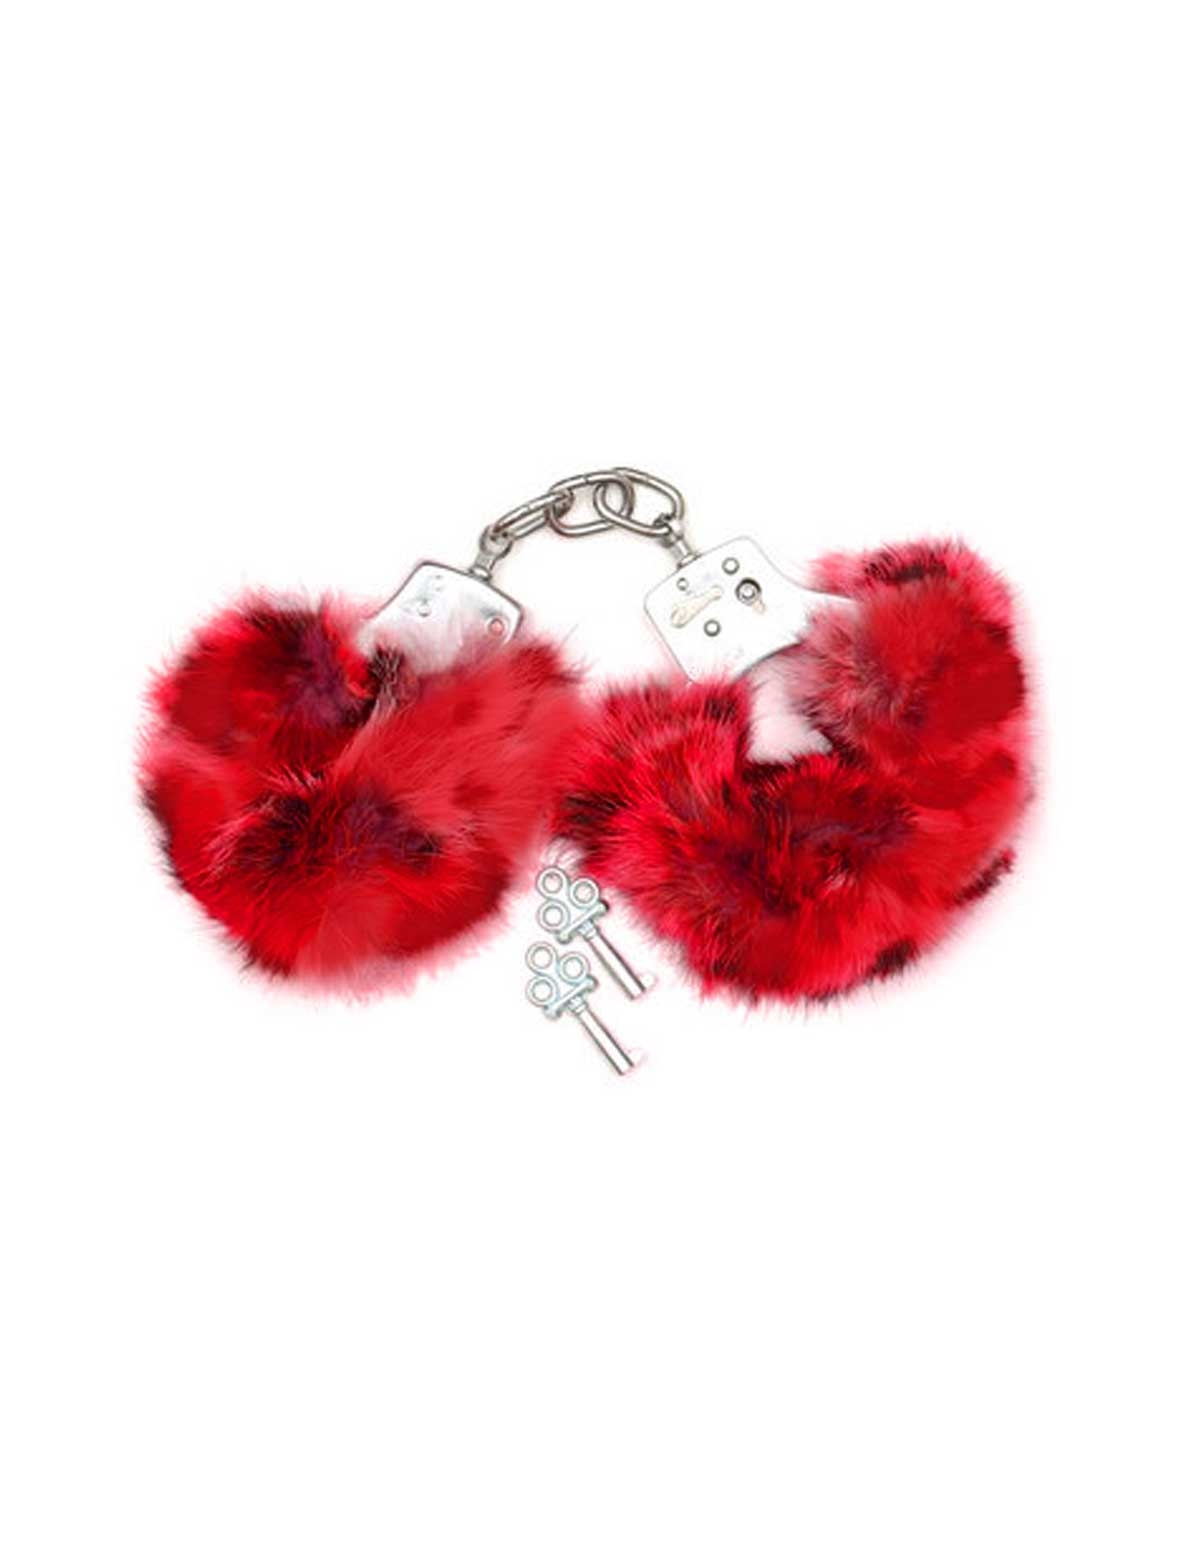 Rabbit Fur Handcuffs Red